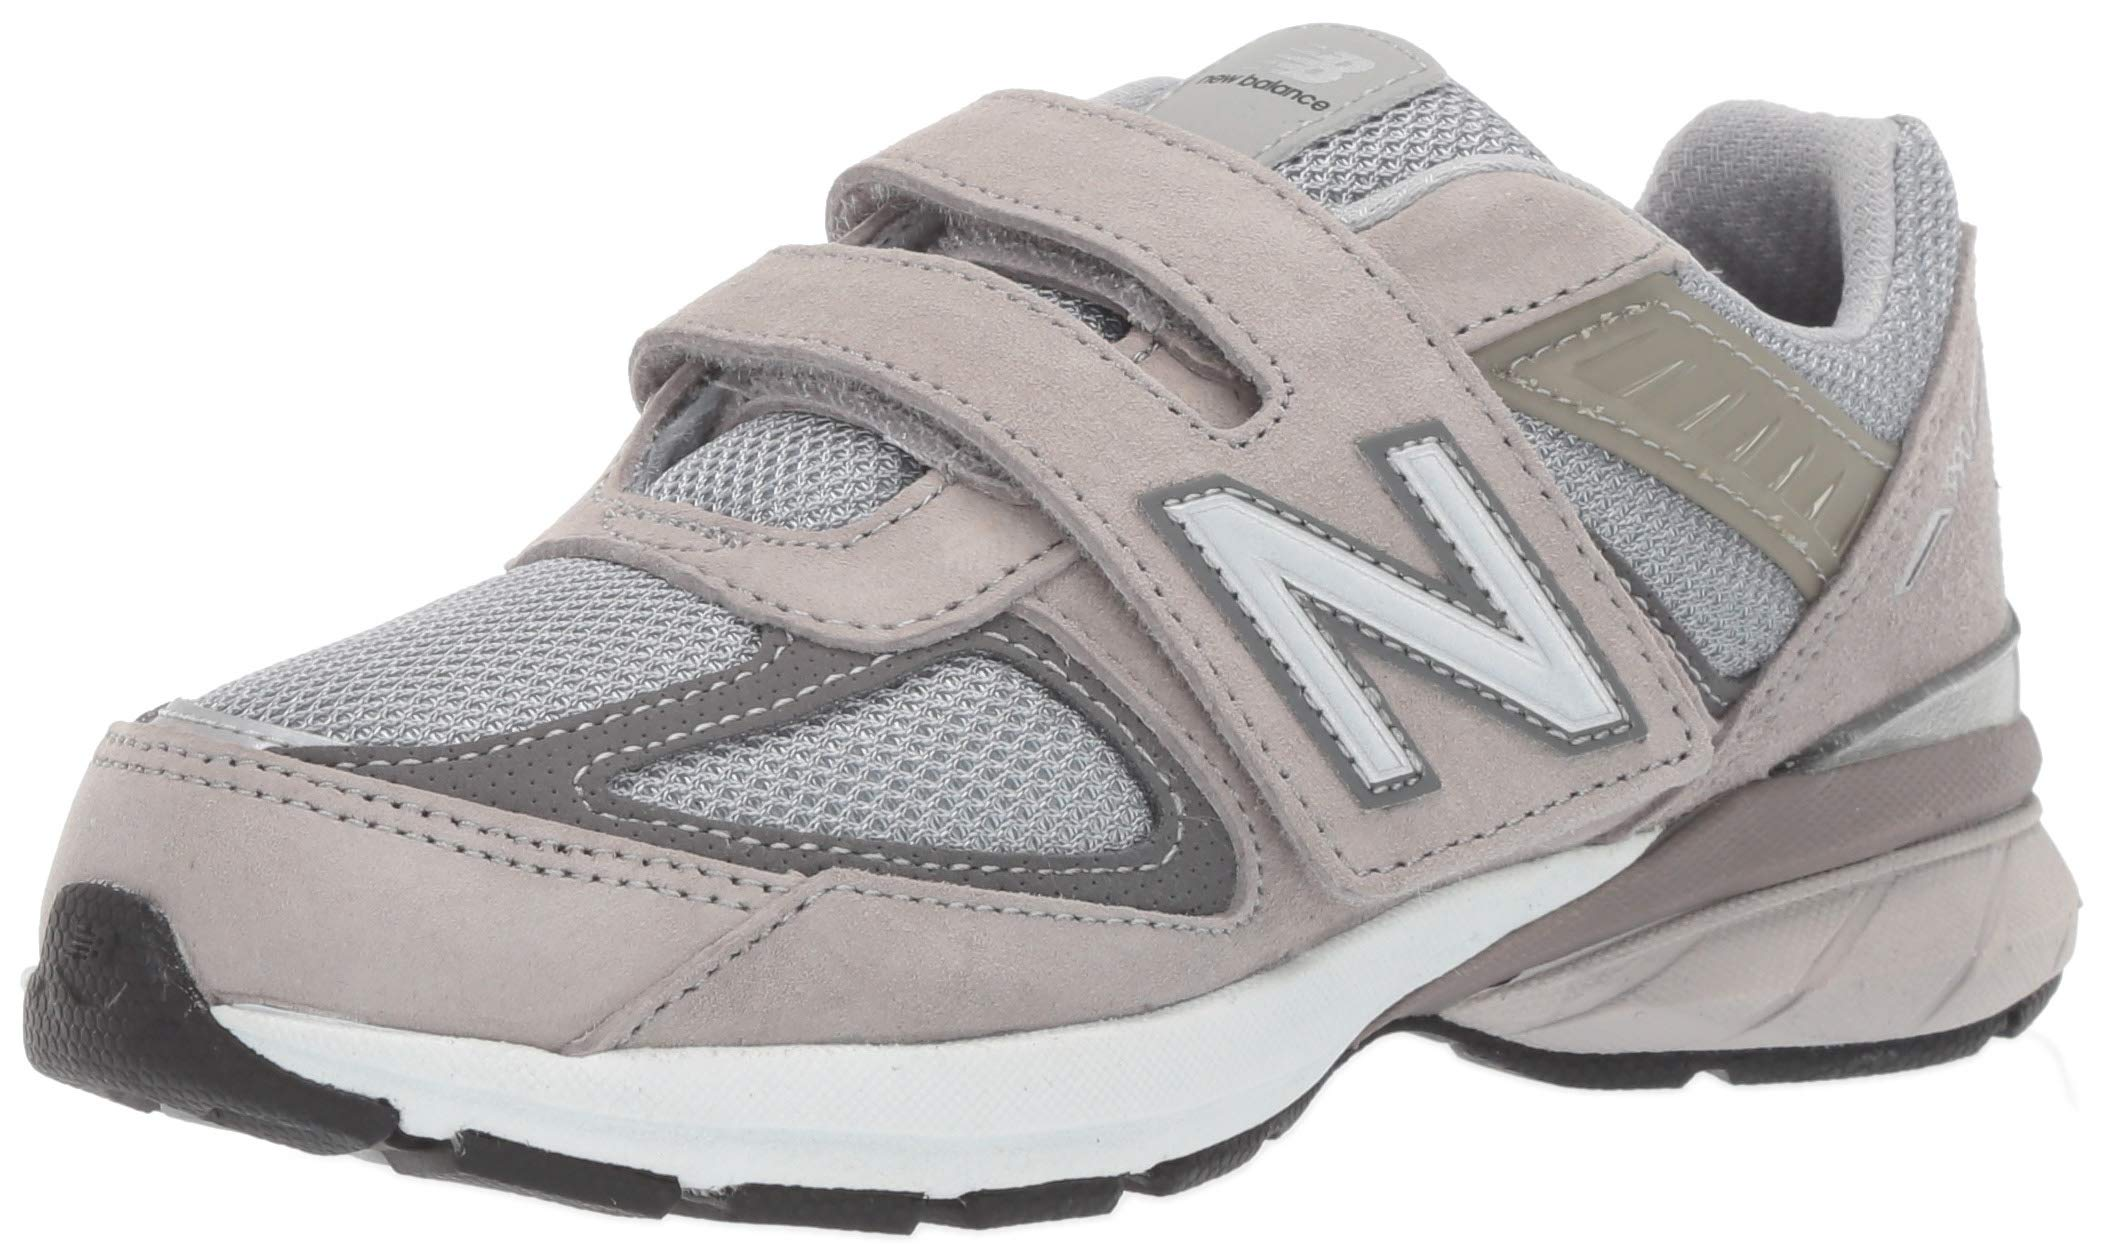 New Balance Boys' 990v5 Hook and Loop Running Shoe, Grey/Grey, 12 M US Little Kid by New Balance